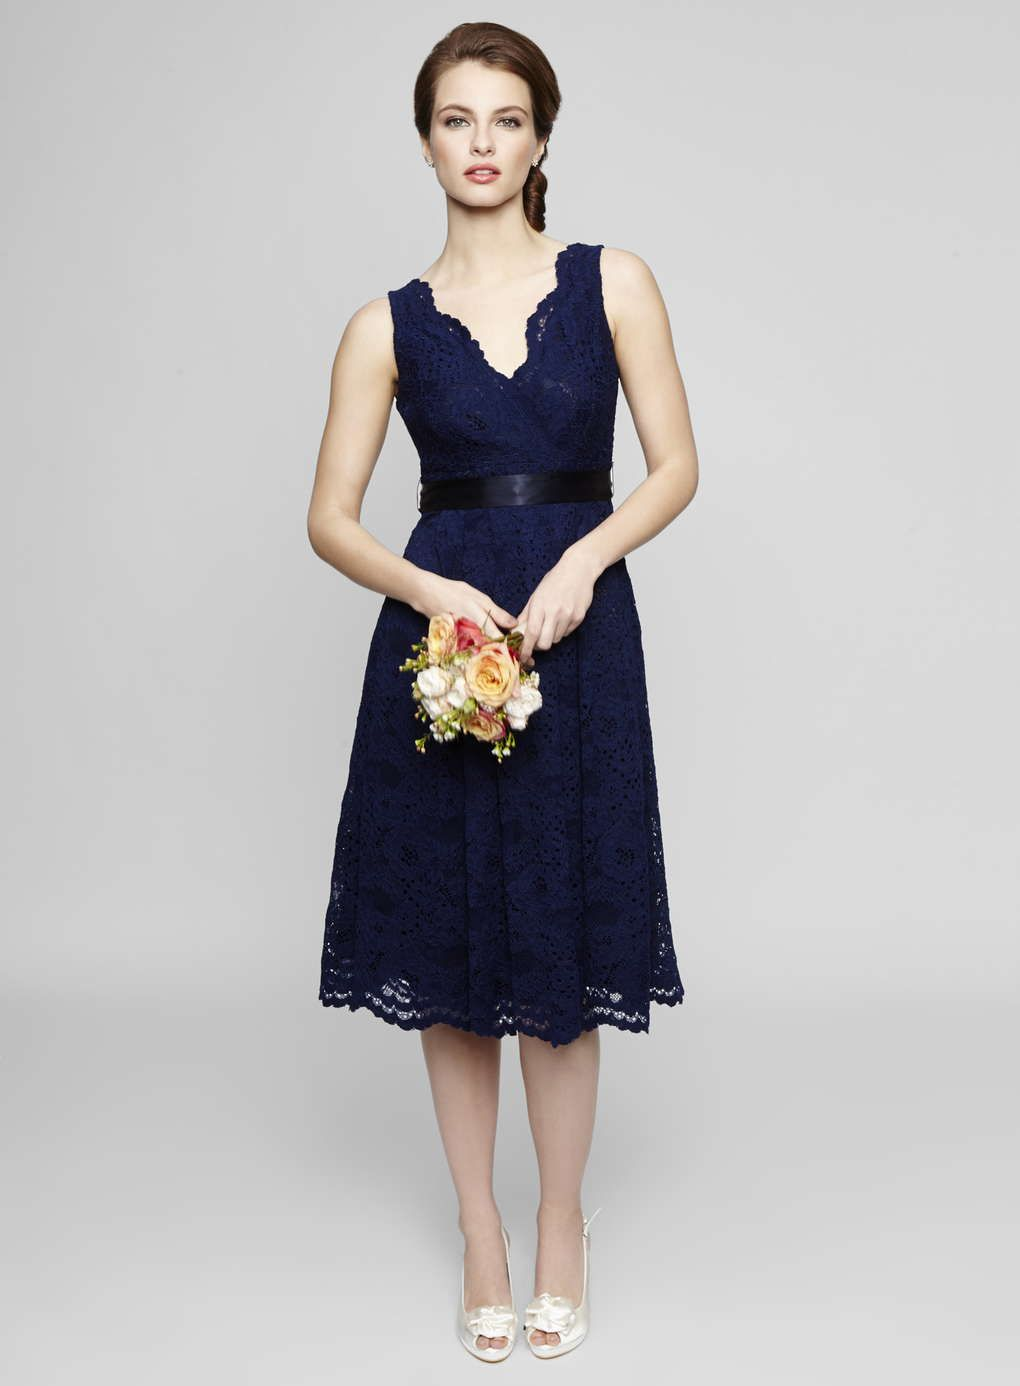 Sleeveless V Neck Tea Length Lace Bridesmaid Dress | Hannah\'s ...